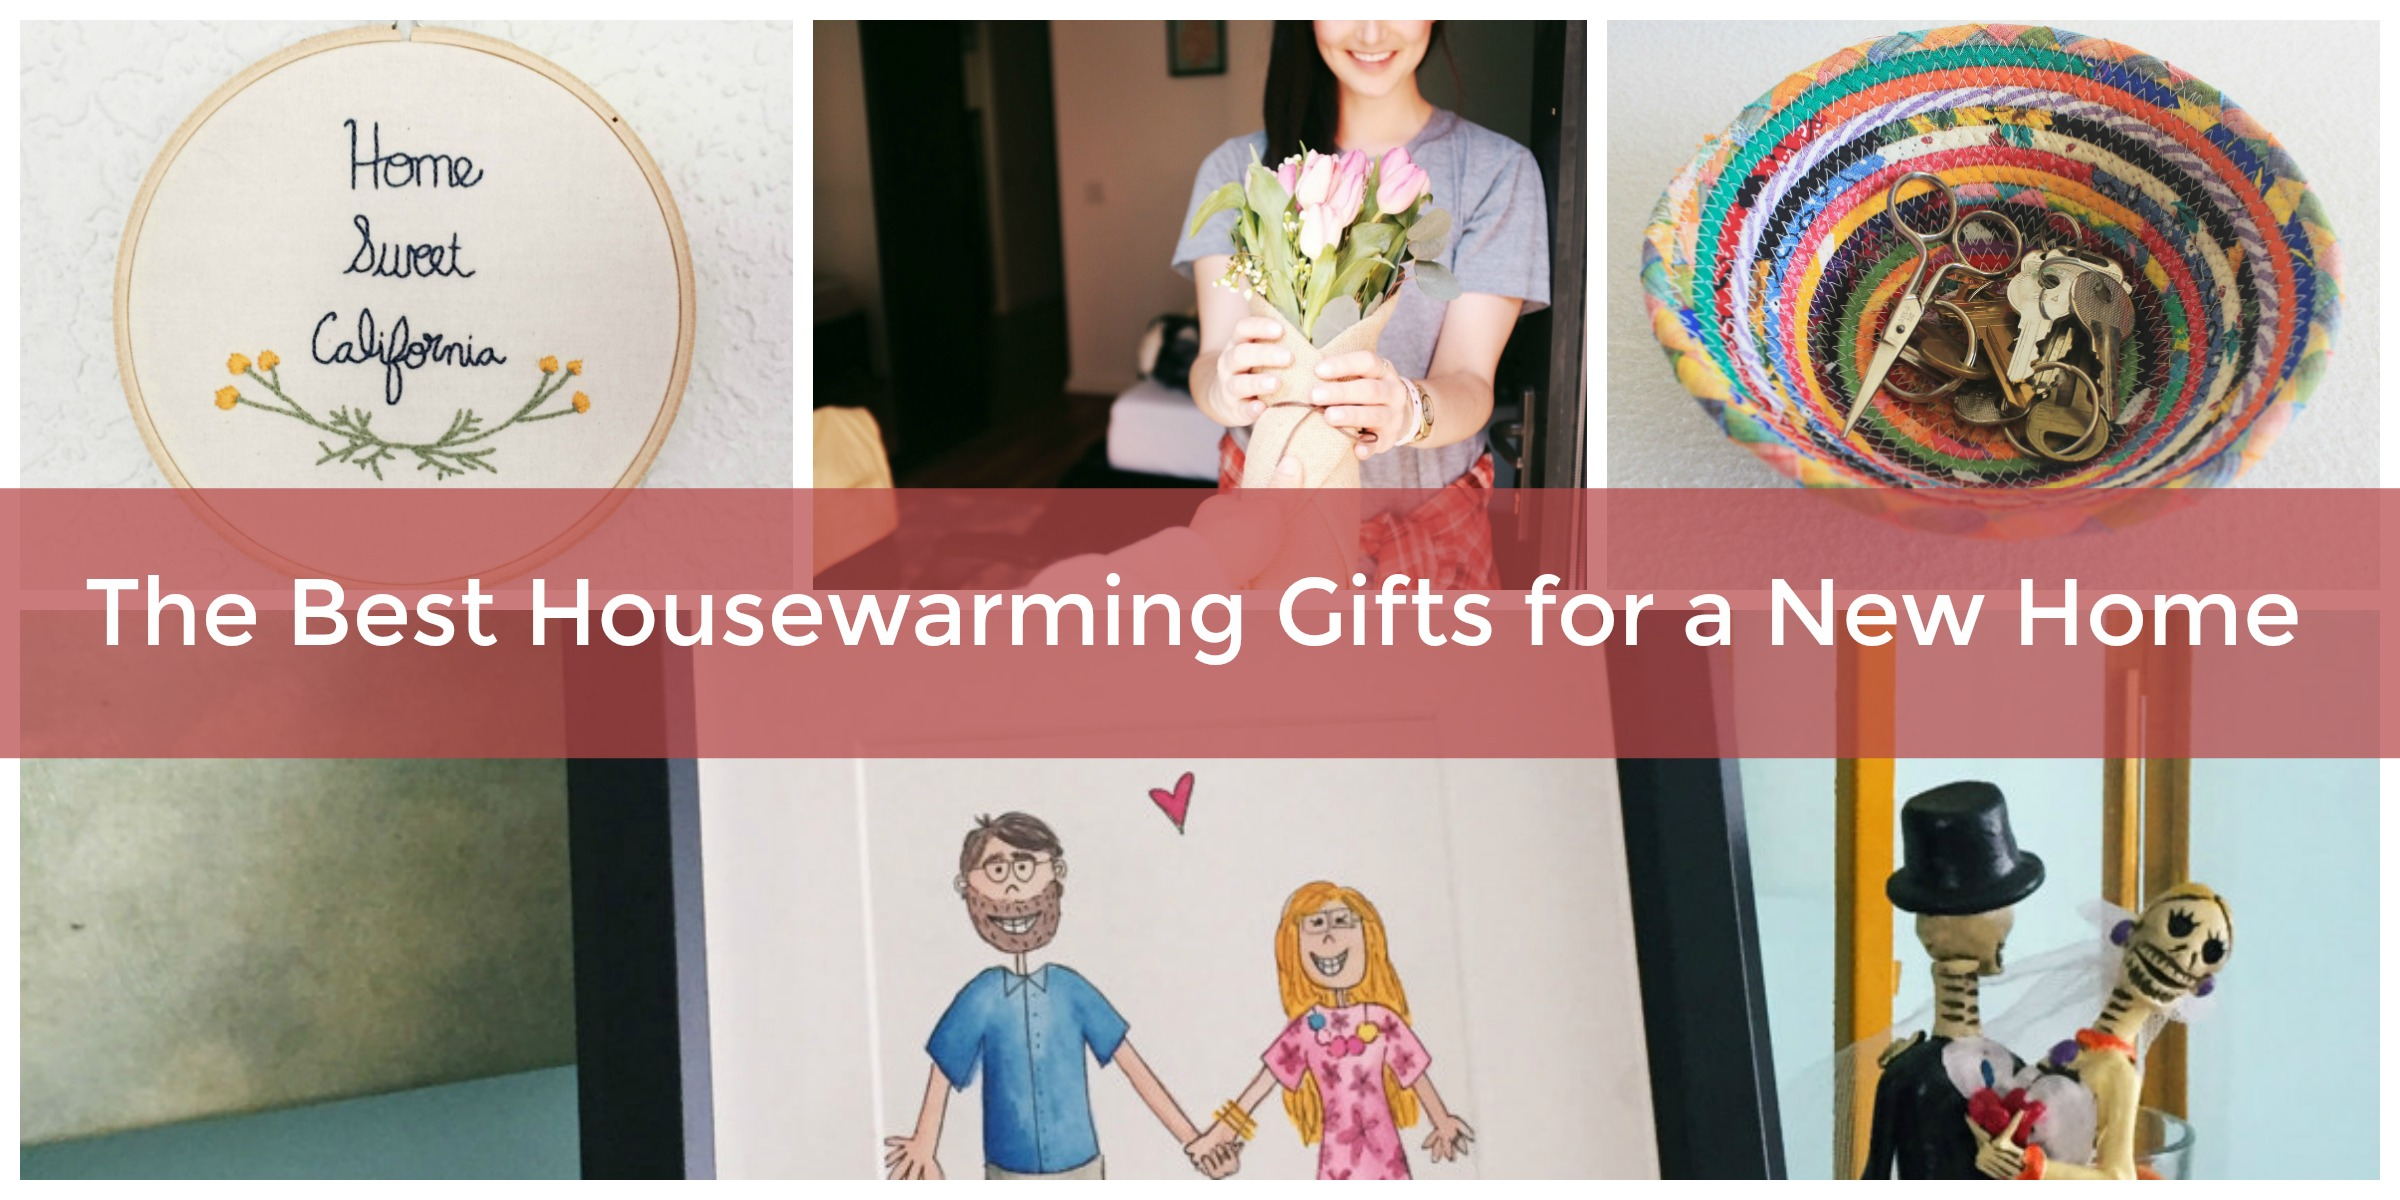 September 1 2017 Courtney S Best New Home Housewarming Gifts